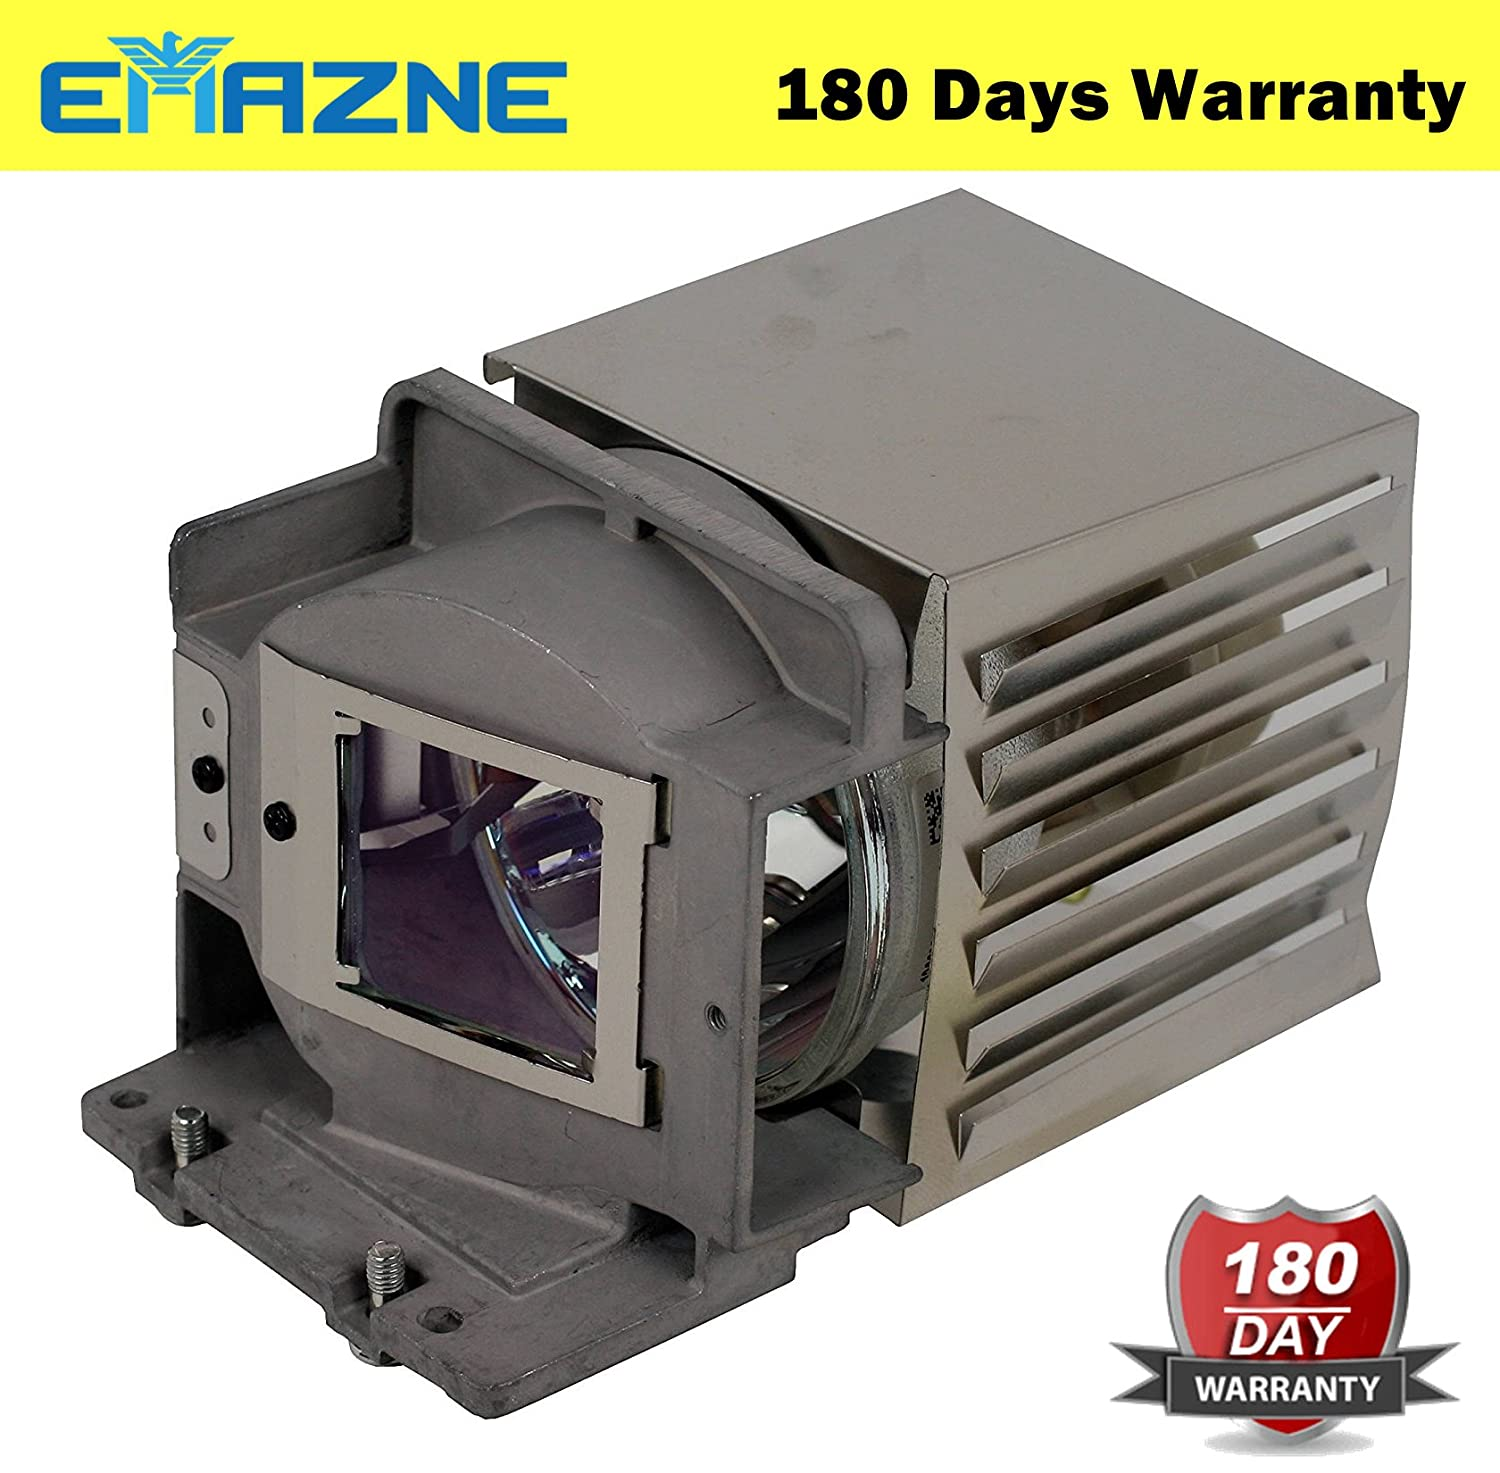 Emazne BL-FP240A Projector Replacement Compatible Lamp with Housing Work for Optoma TW631-3D Optoma TX631-3D 180 Days Warranty